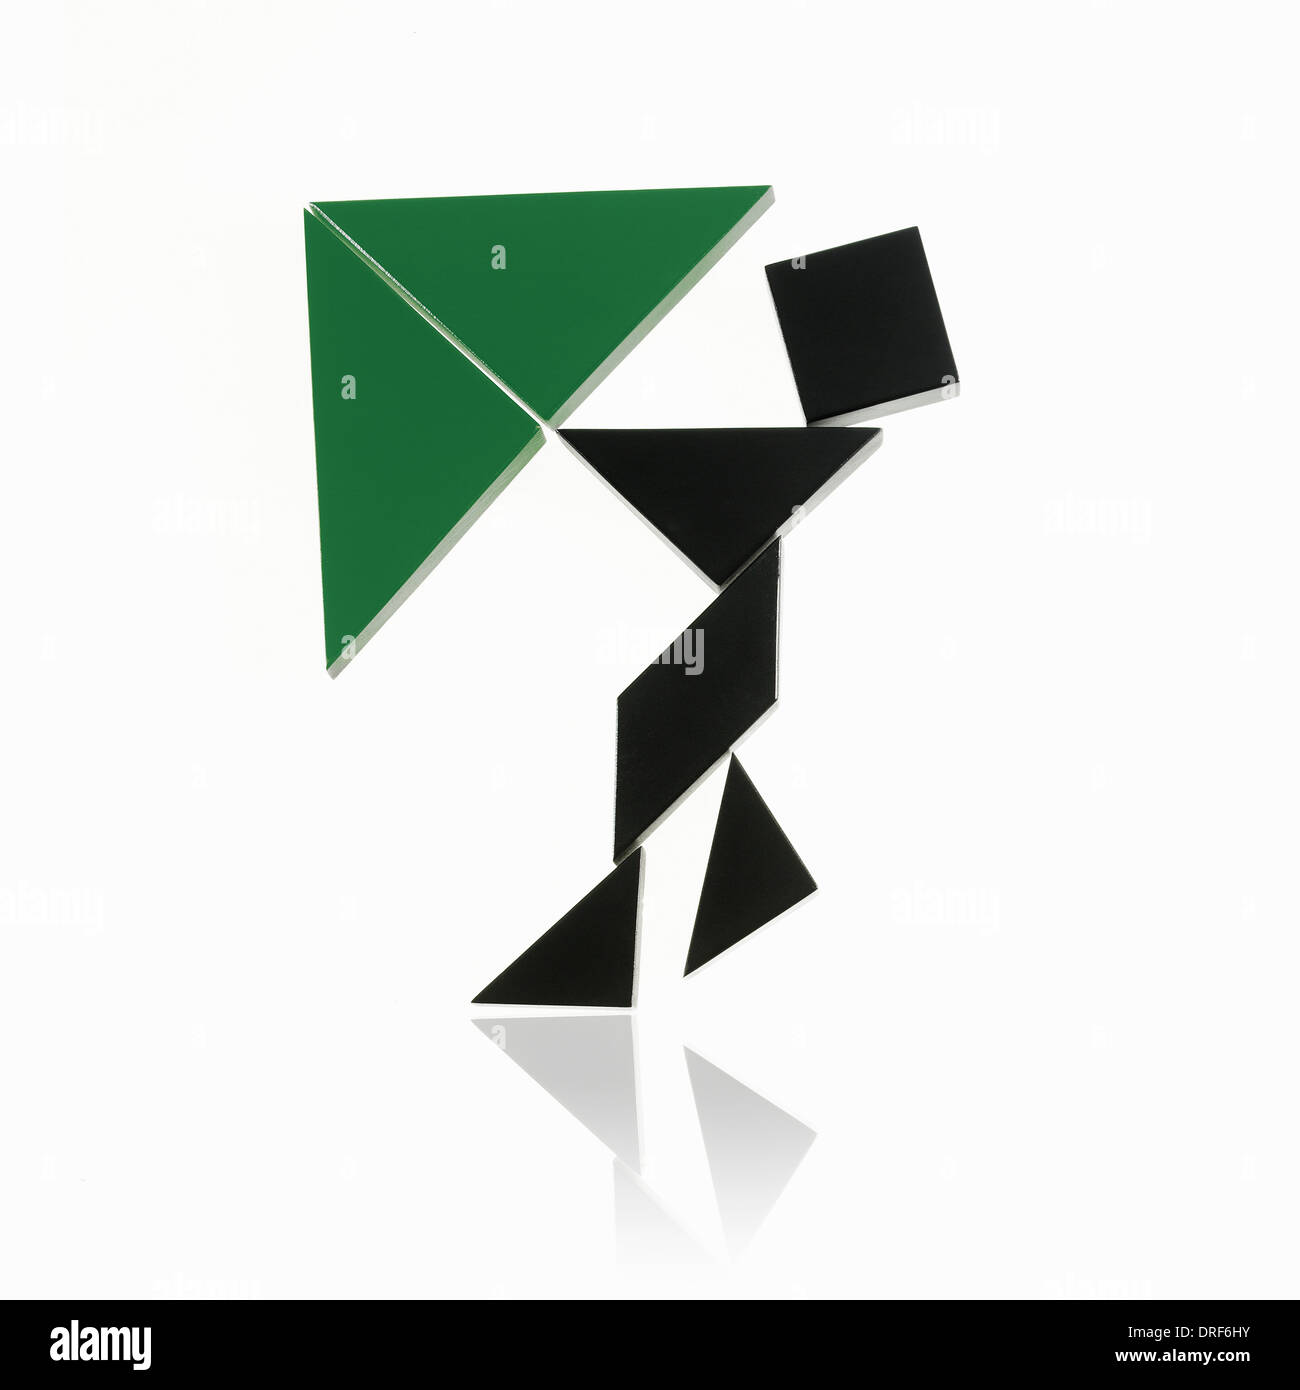 triangles squares shapes person action - Stock Image